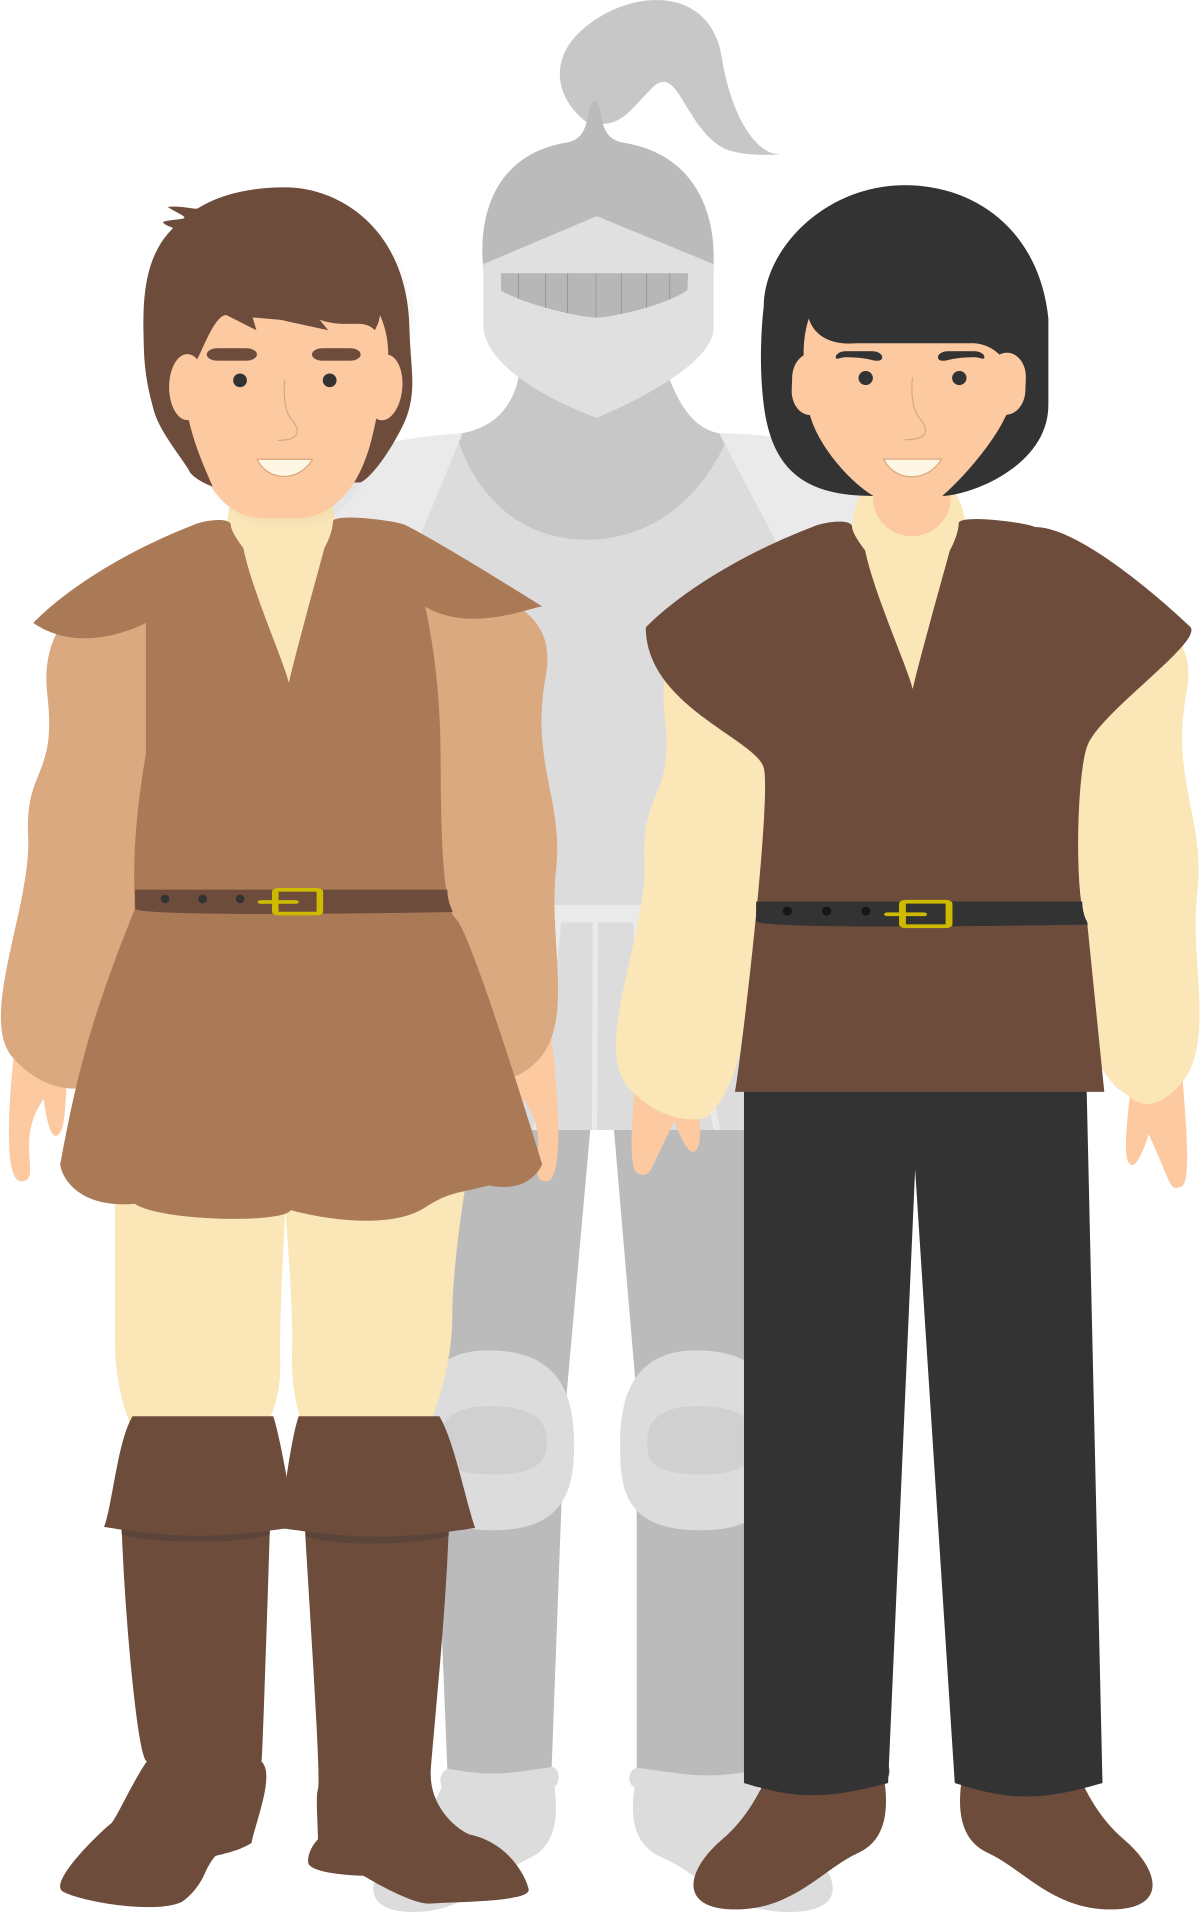 Logic problem on multiple. Knights clipart standing